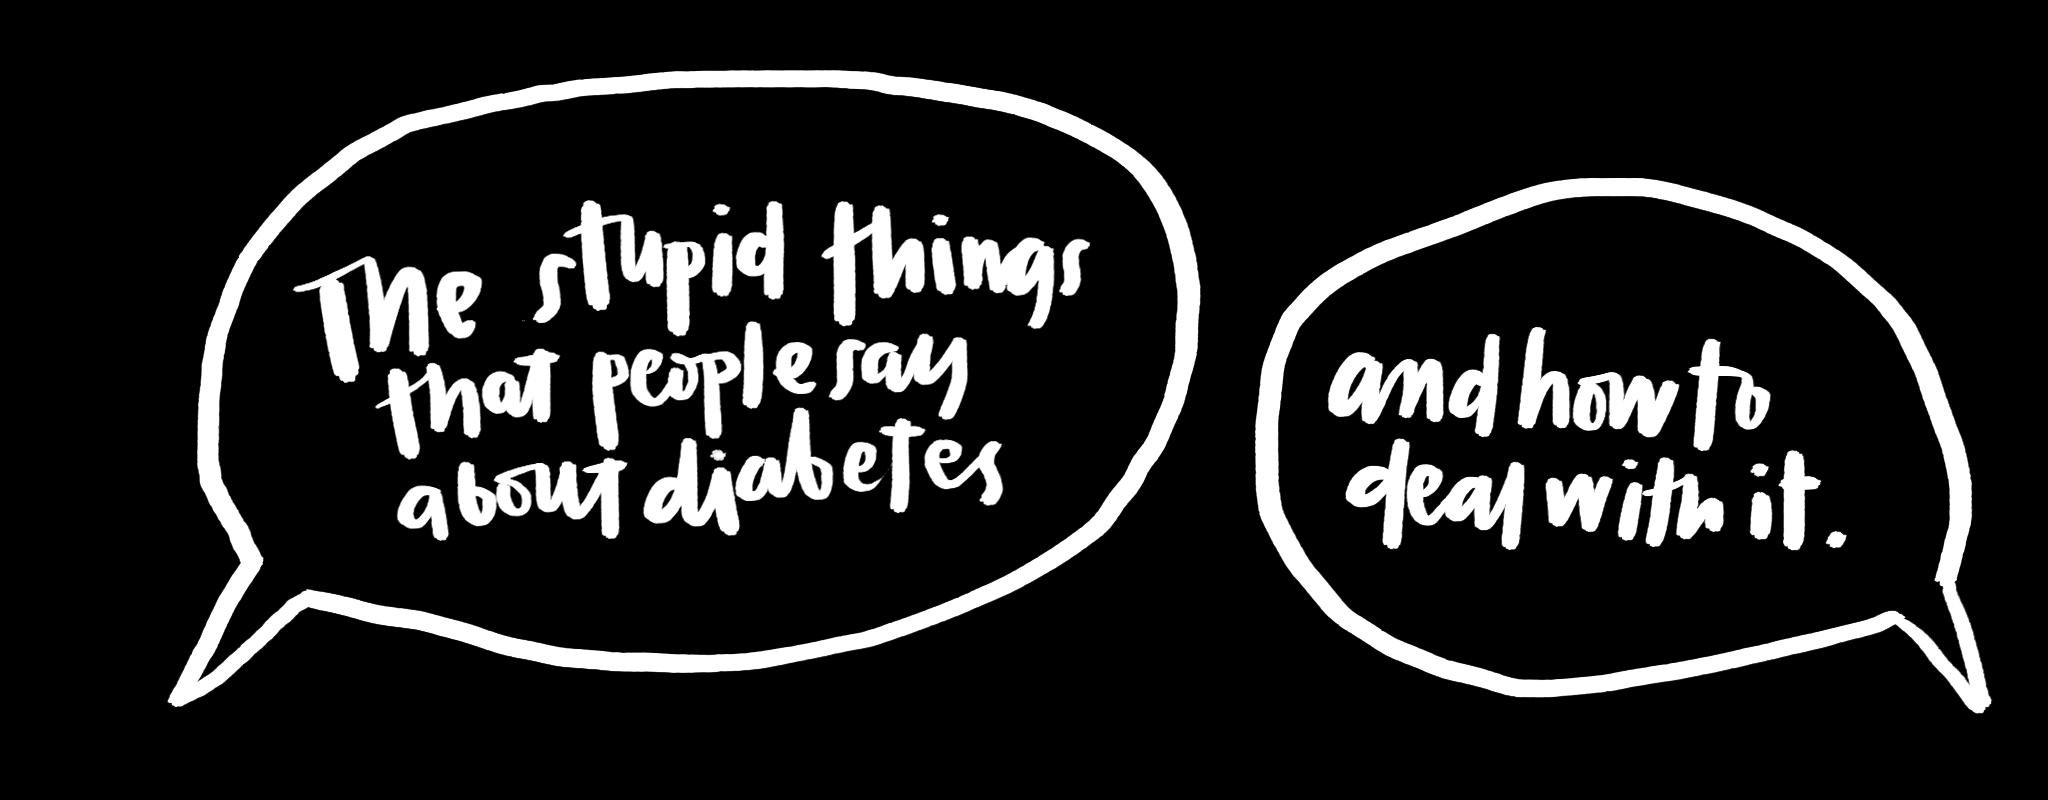 The Stupid Things People Say About Diabetes And How To Deal With It